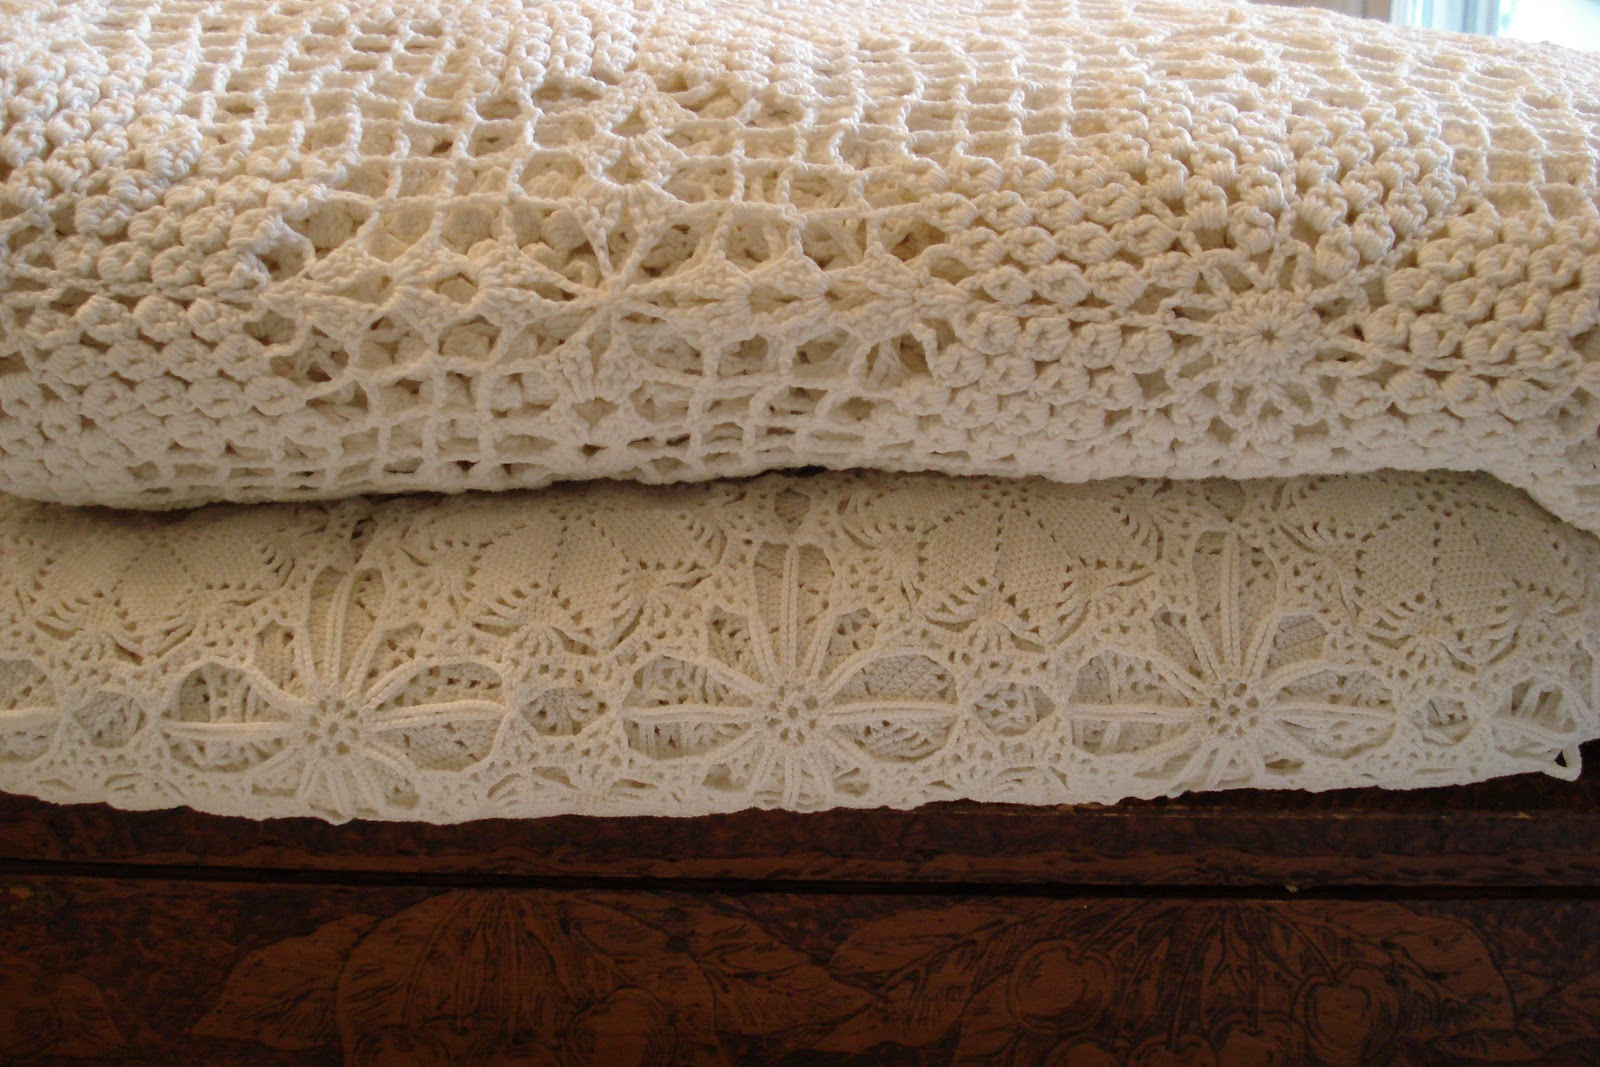 Kmart Tablecloths | Lace Tablecloths Round | Lace Tablecloths